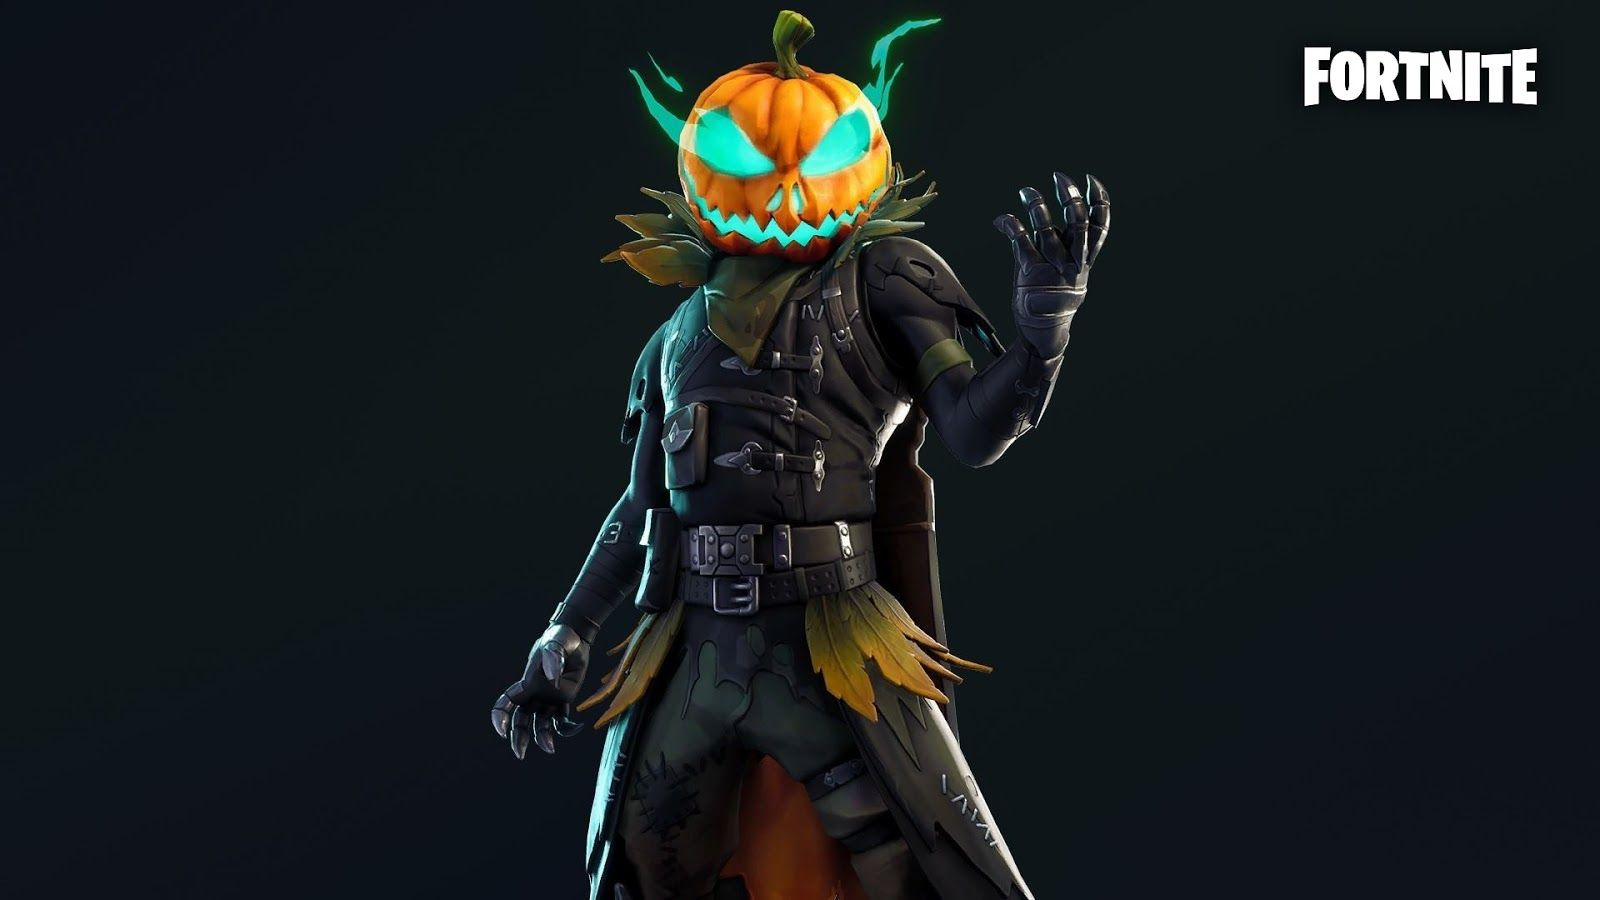 Pin On Fortnite Wallpapers Hd 1080p